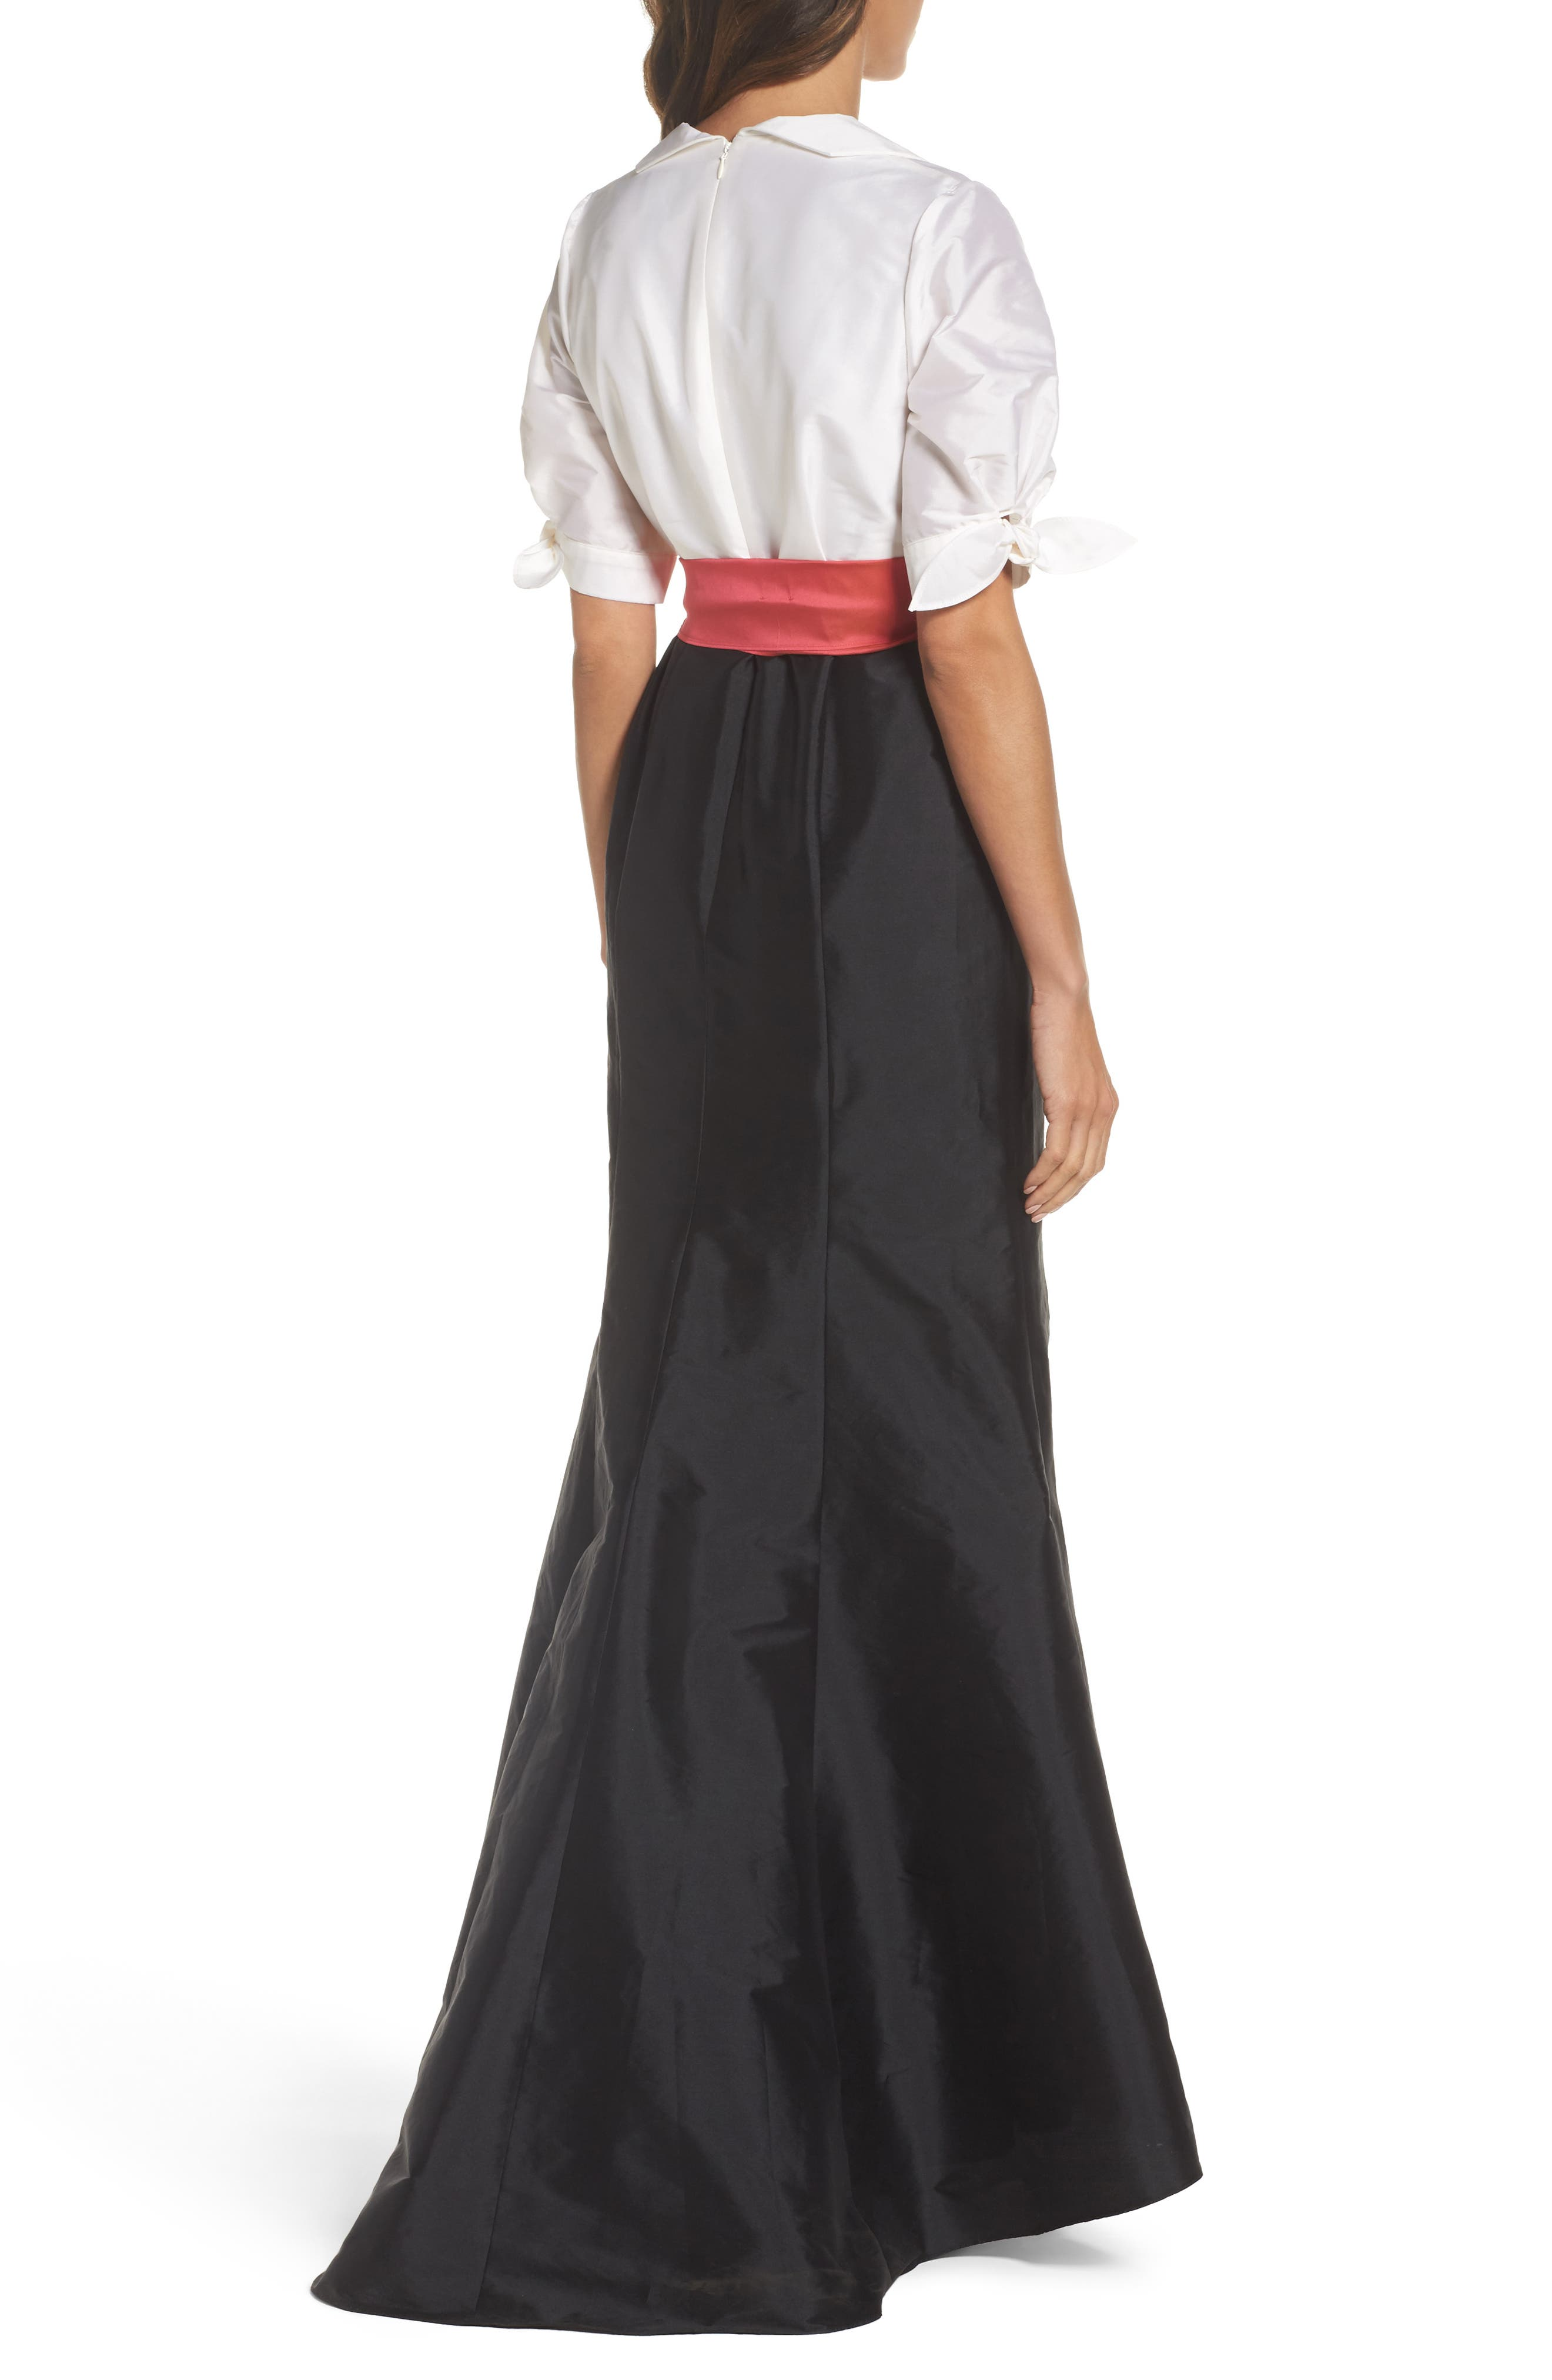 Adrianna Pappell Taffeta Mermaid Gown with Train,                             Alternate thumbnail 2, color,                             Ivory/ Black